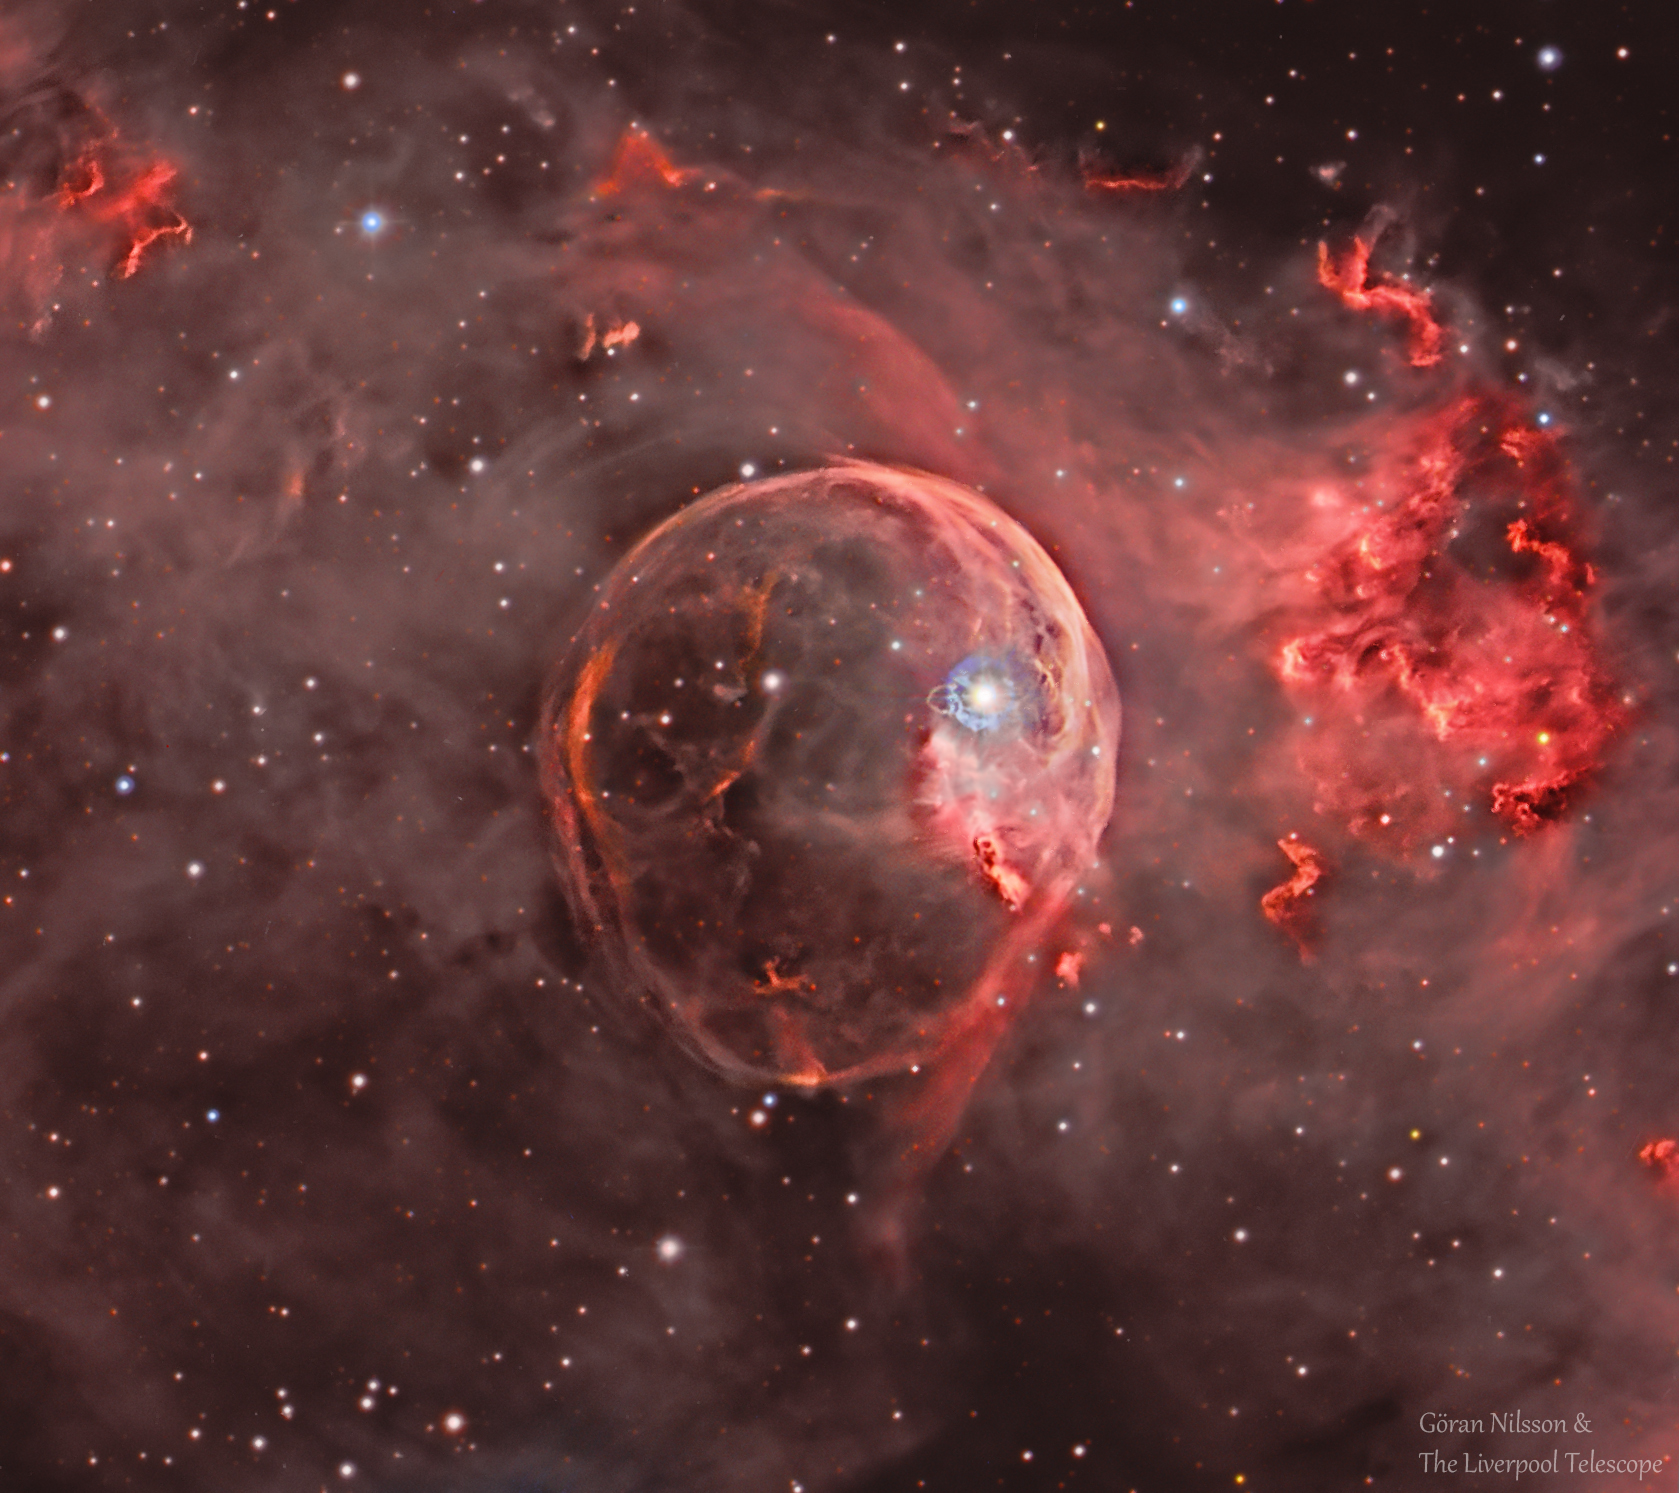 Apod 2018 february 5 ngc 7635 the bubble nebula expanding clicking on the picture will download the highest resolution version available thecheapjerseys Image collections